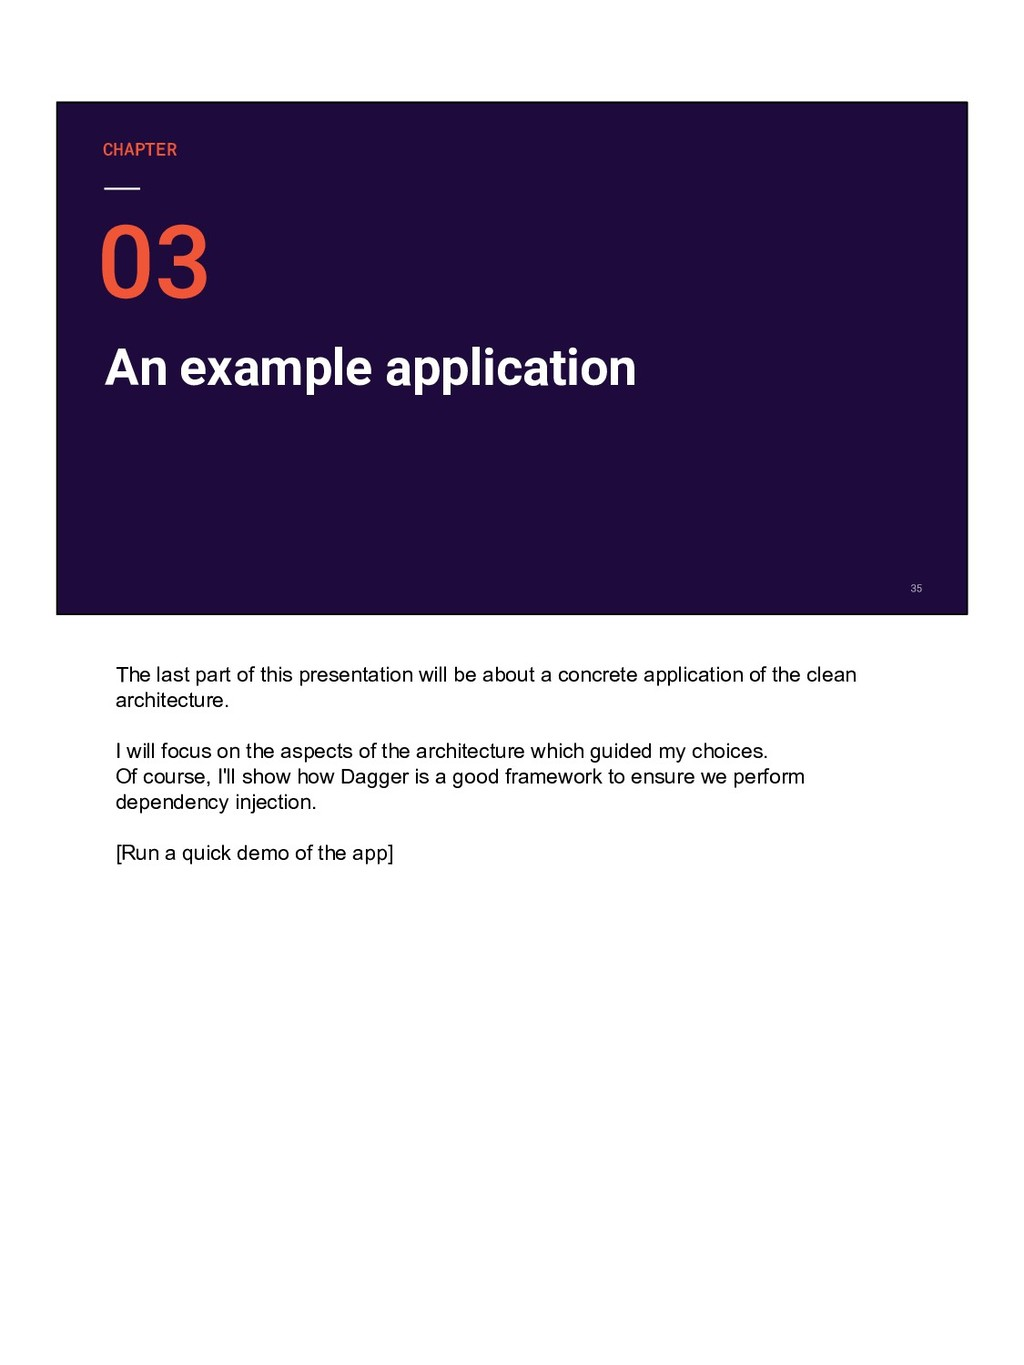 An example application CHAPTER The last part of...